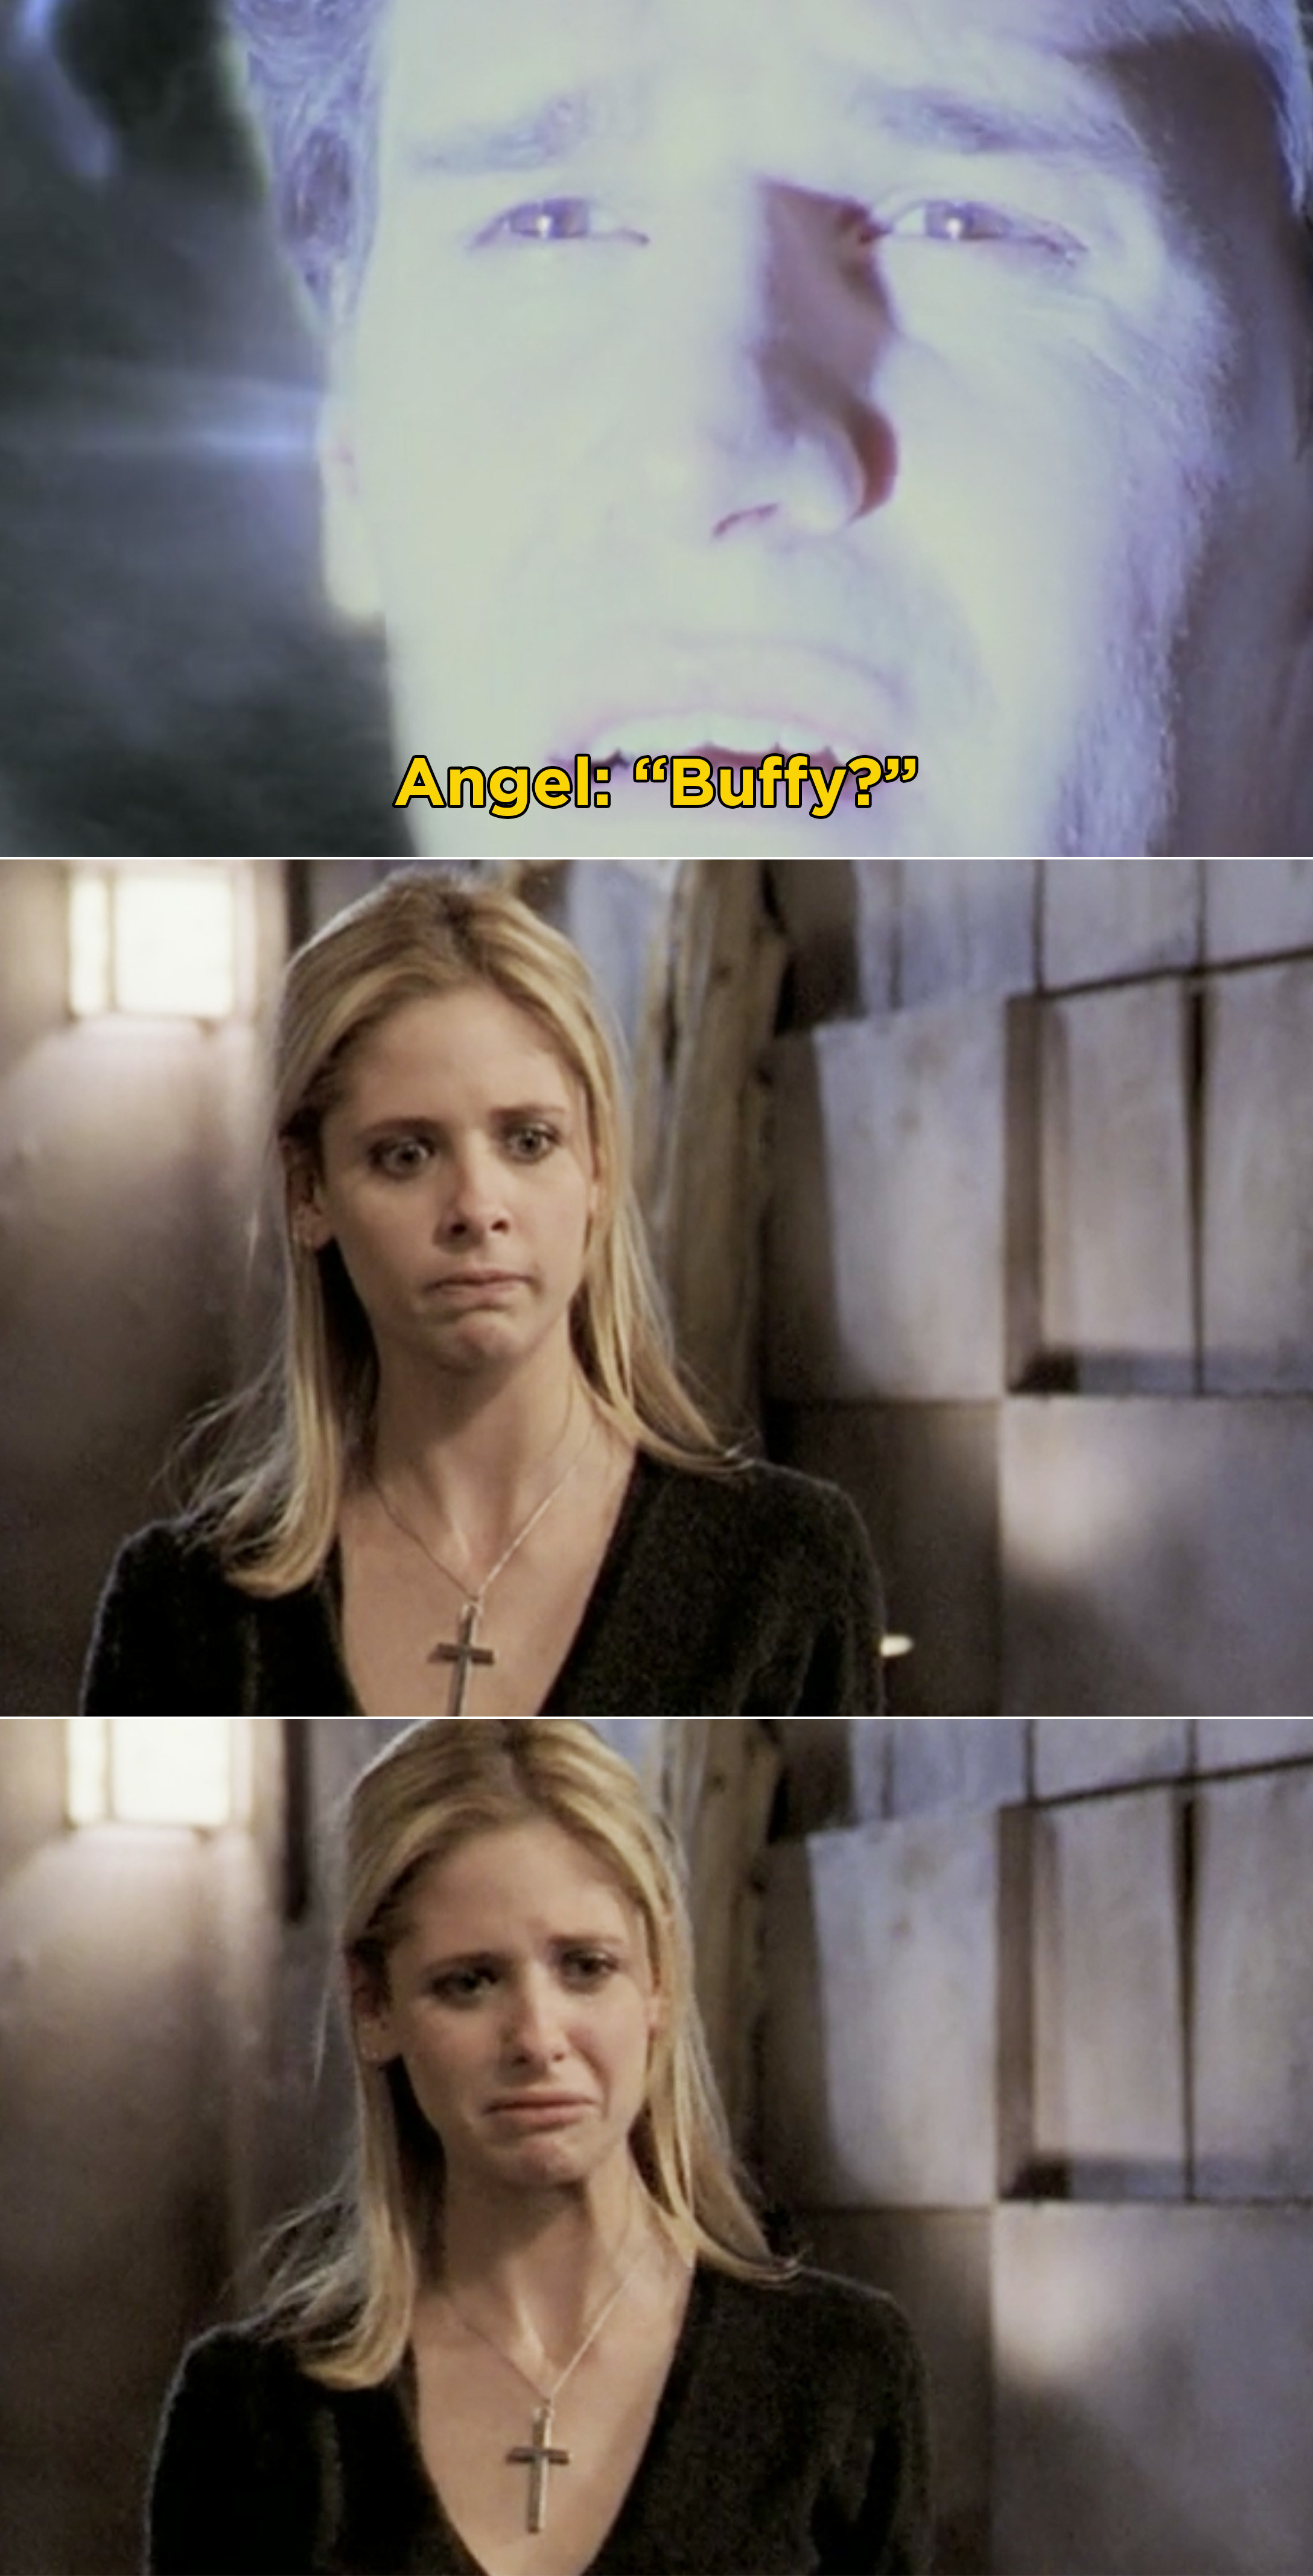 Buffy crying over Angel as he's sucked into a portal